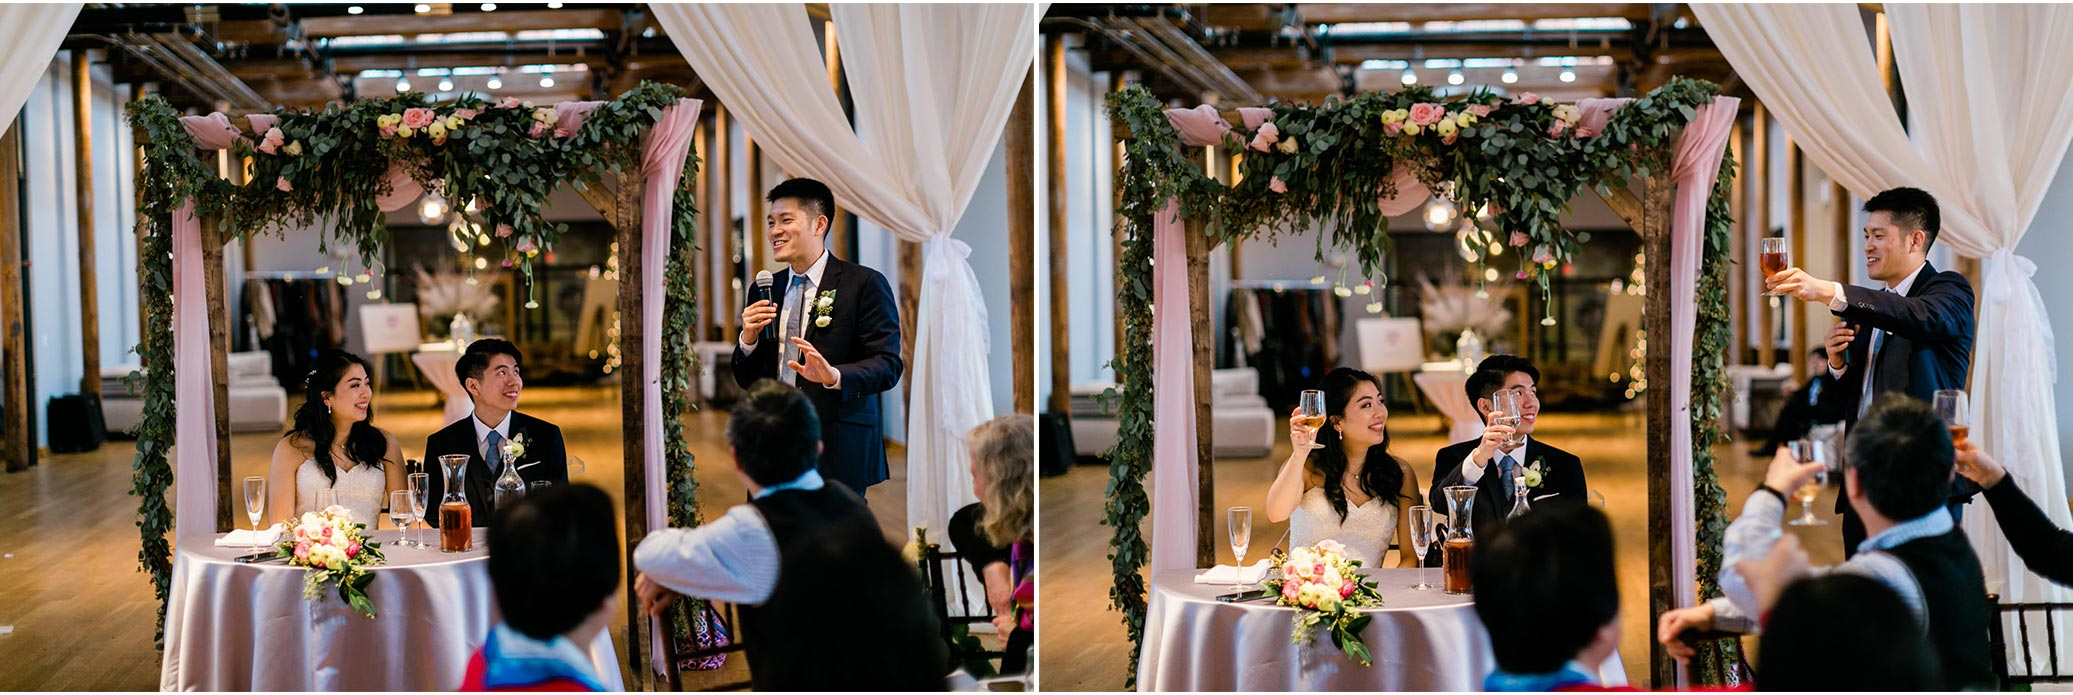 Best Man giving speech during reception | Durham Wedding Photographer | The Cotton Room | By G. Lin Photography